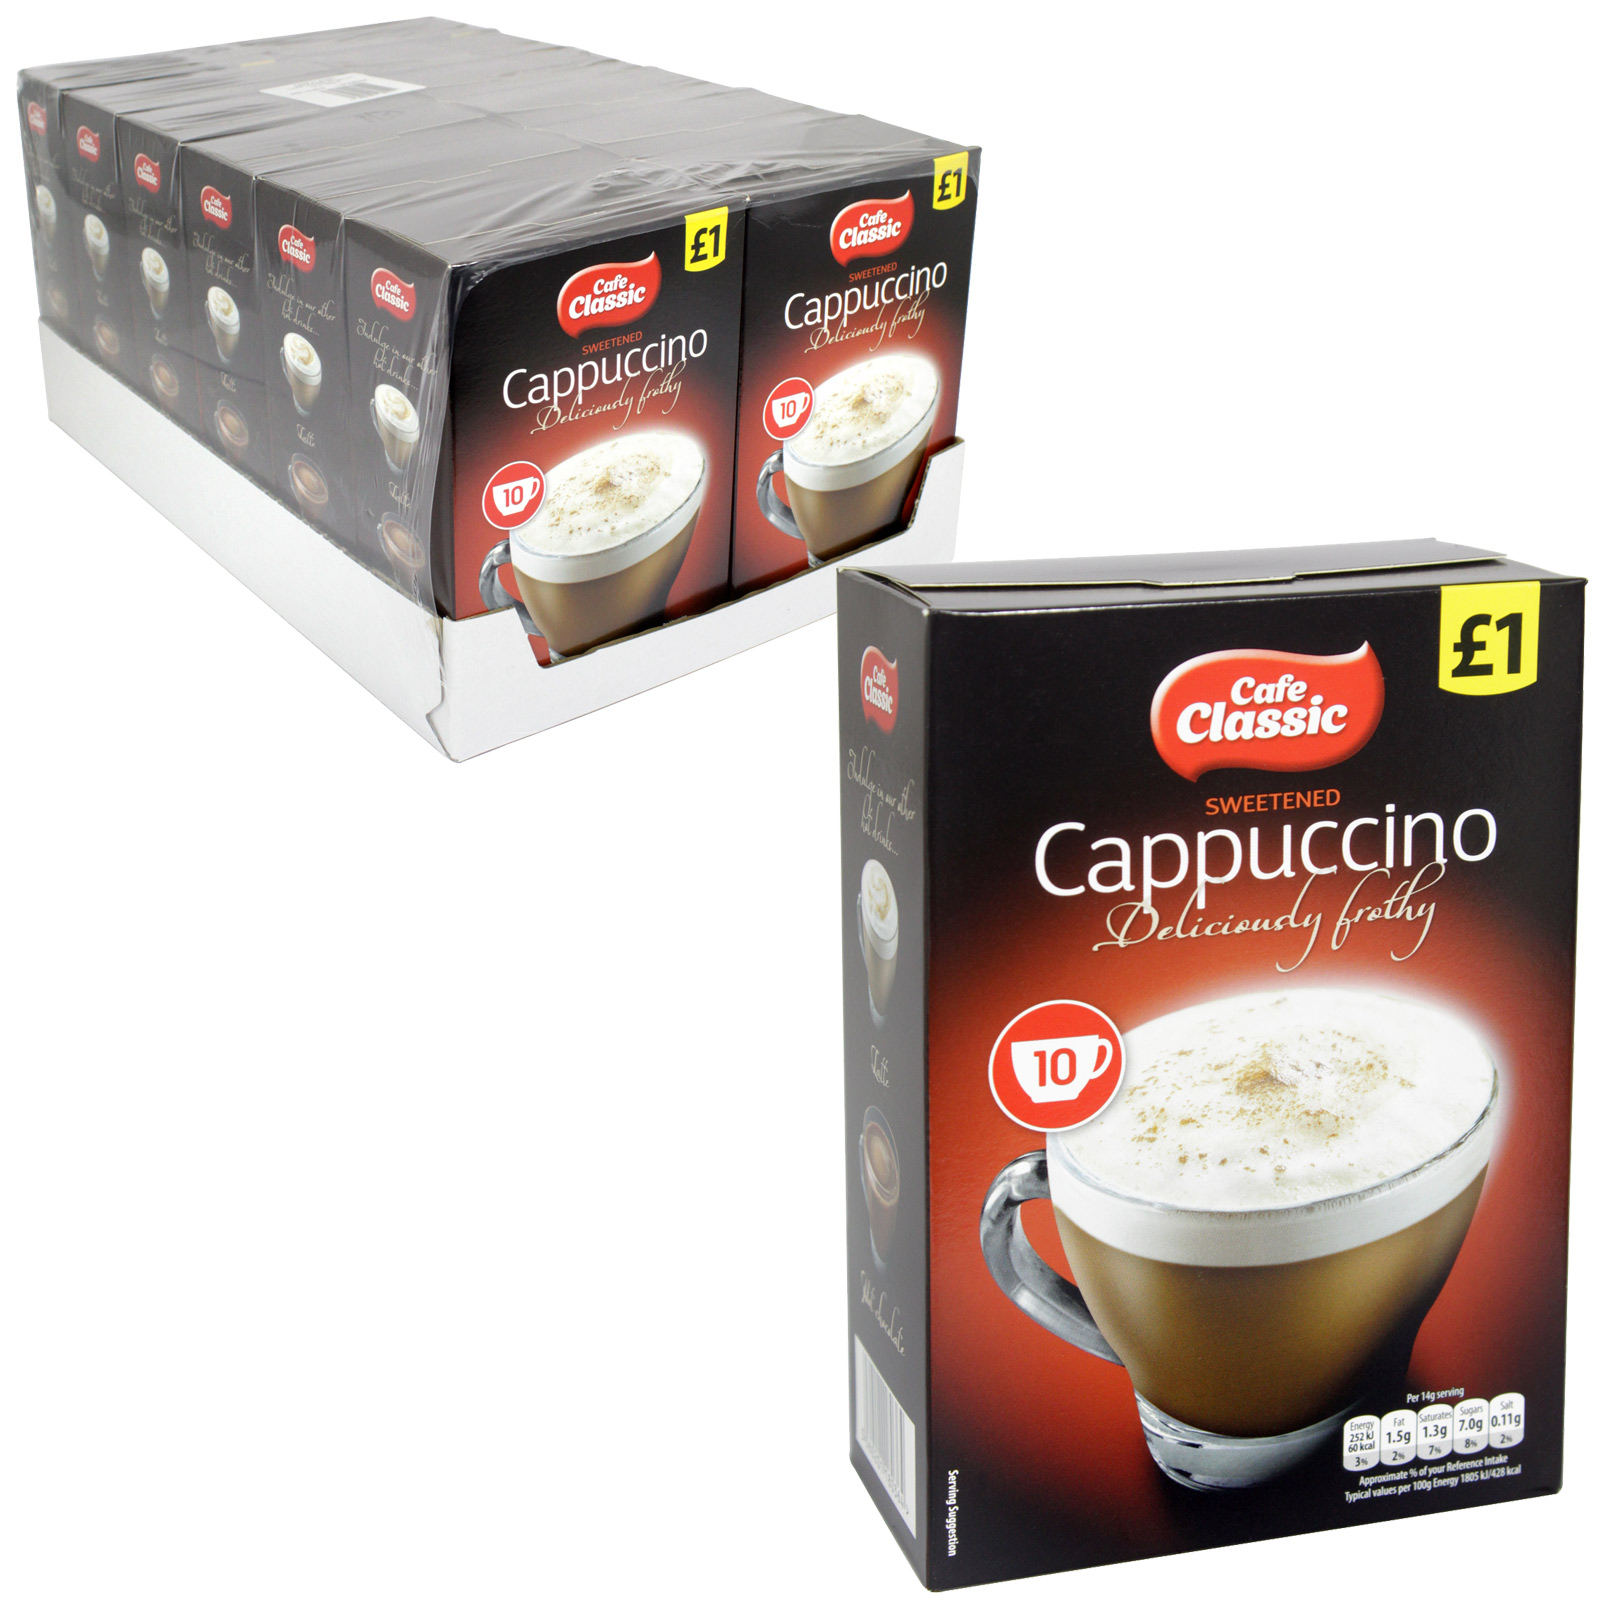 CAFE CLASSIC SWEETENED CAPPUCCINO 10PK P/M ?1 X12